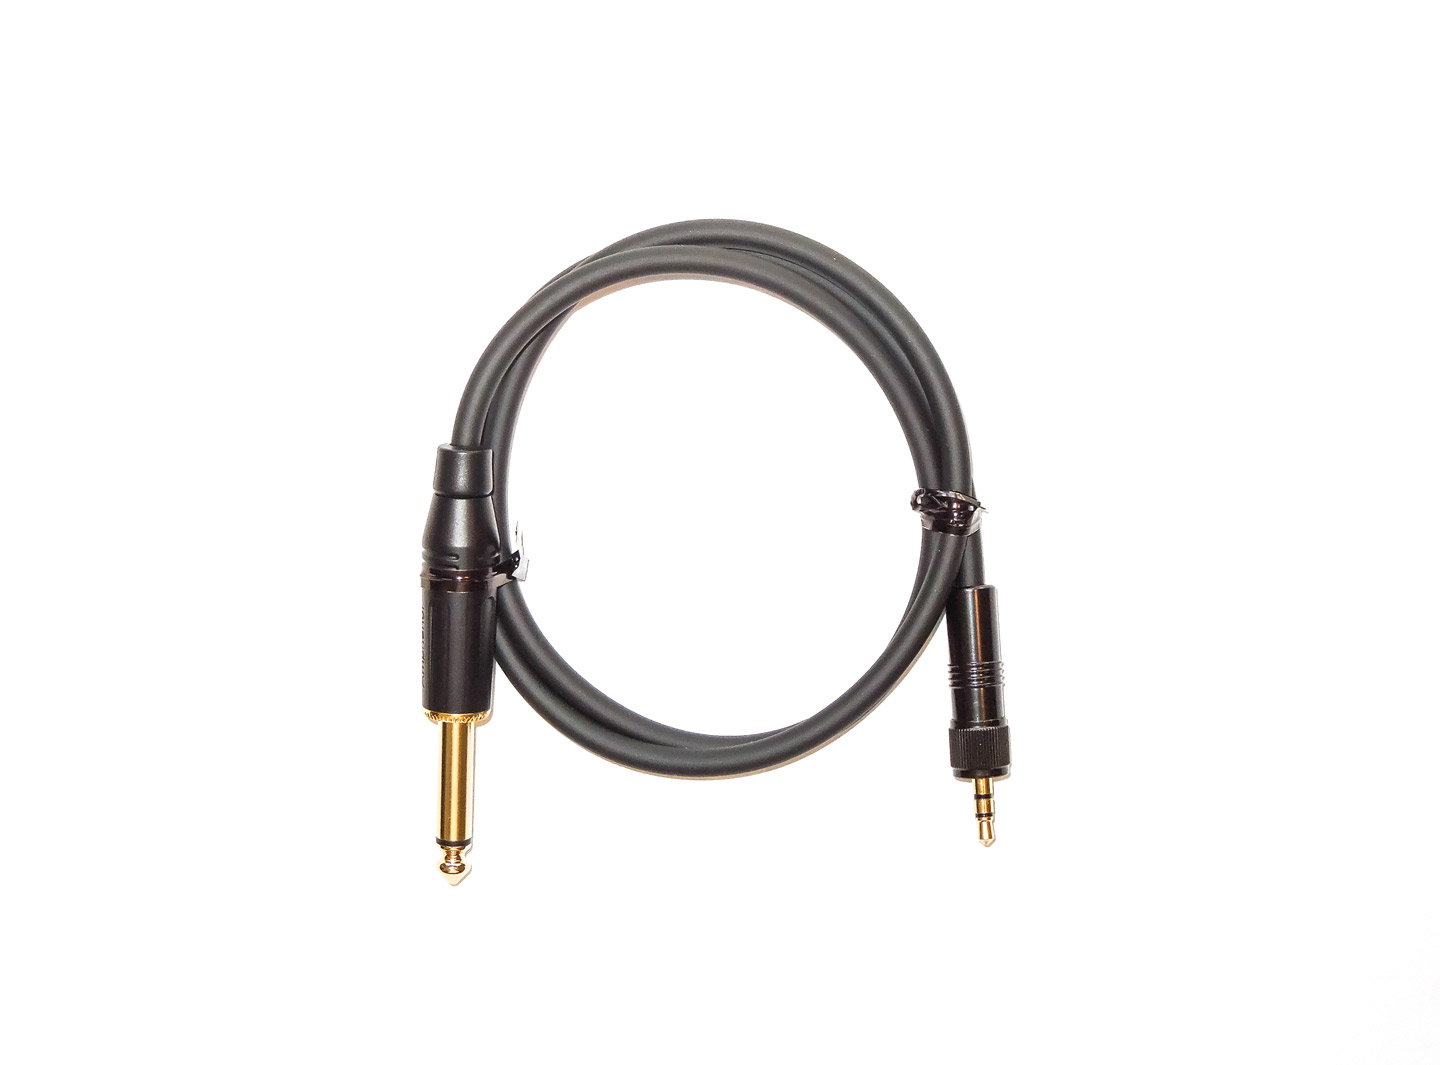 L6C-X2S Premium Replacement Cable for Line 6 X2, Shure